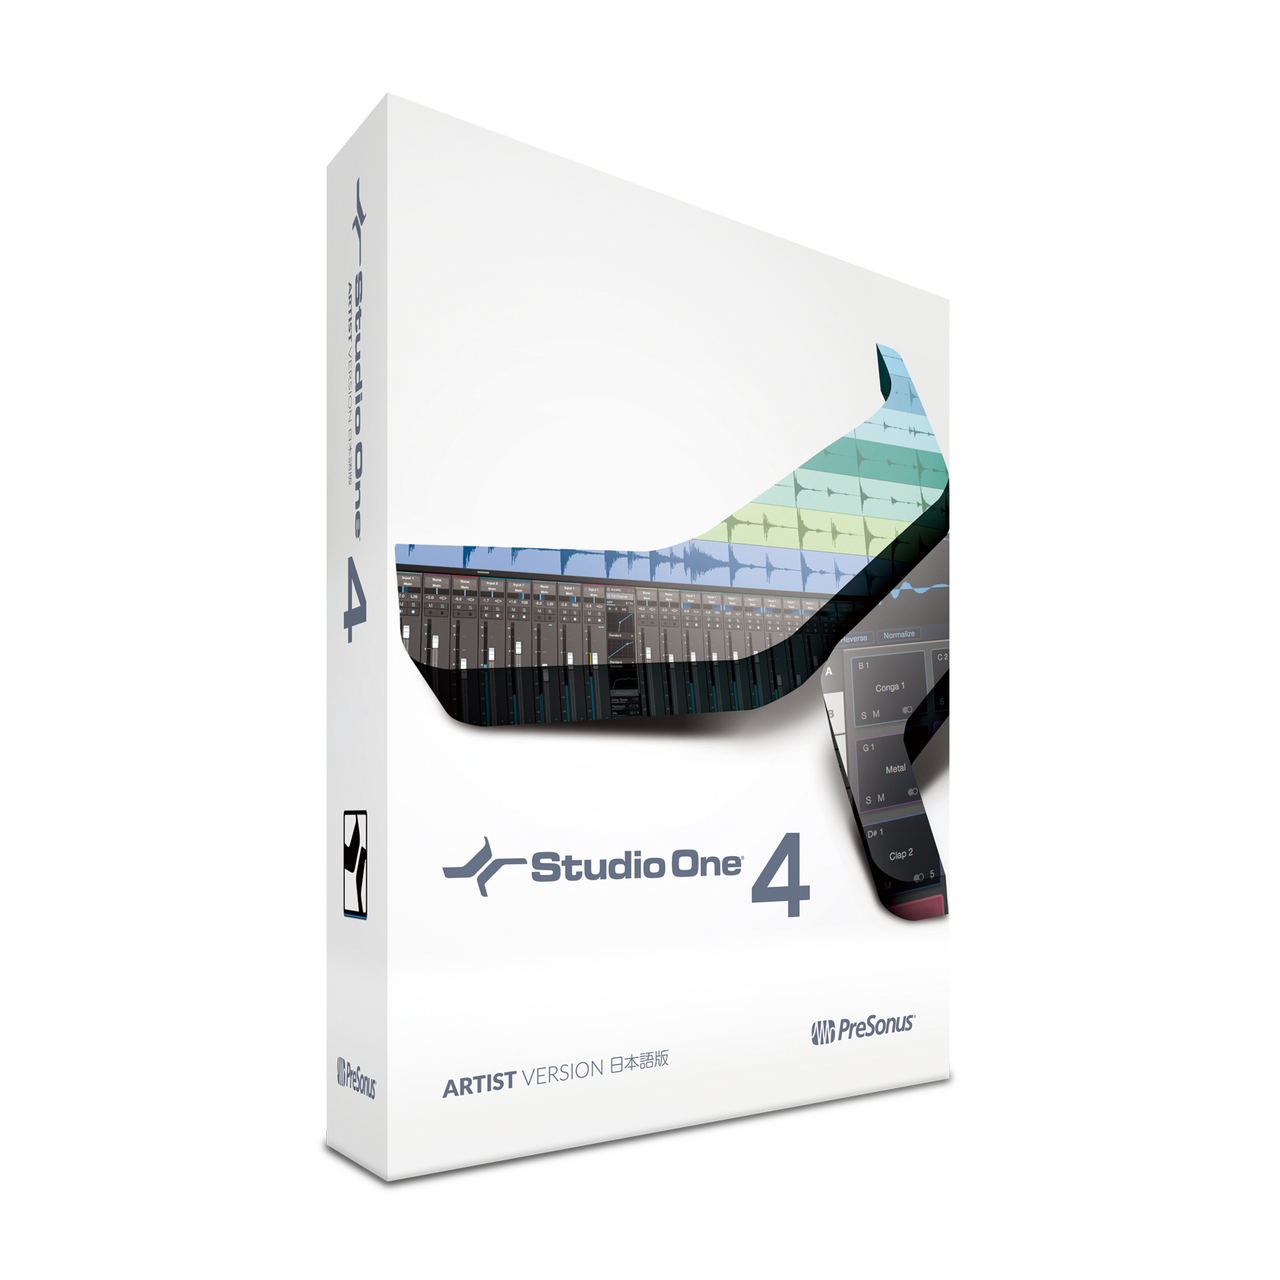 PreSonus Studio One 4 Artist Academic Japanese version (box) [long-awaited major version up!]